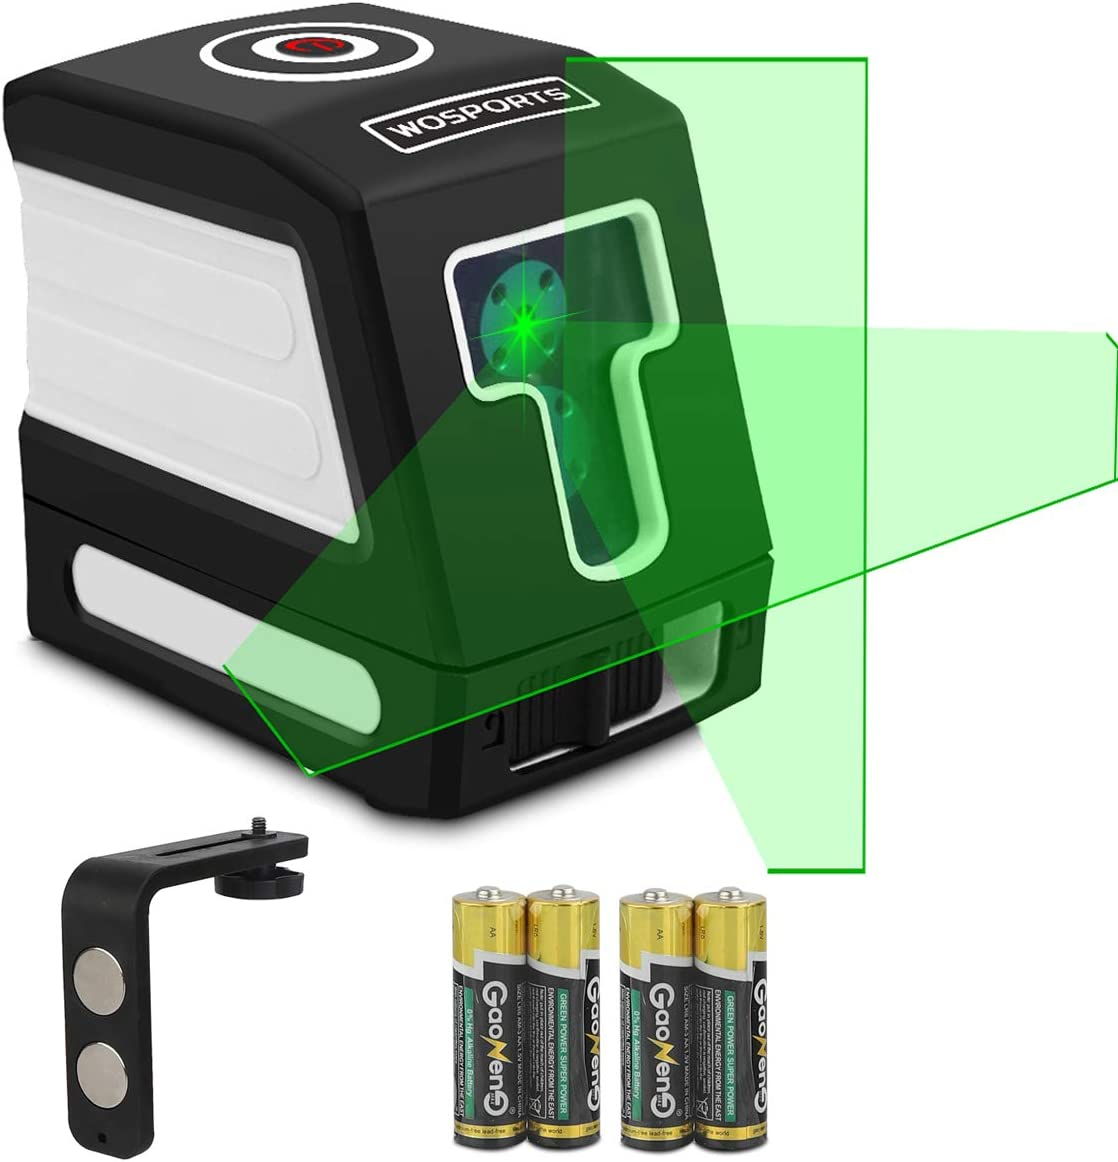 100Ft Self-Leveling Green Laser Level by Wosports